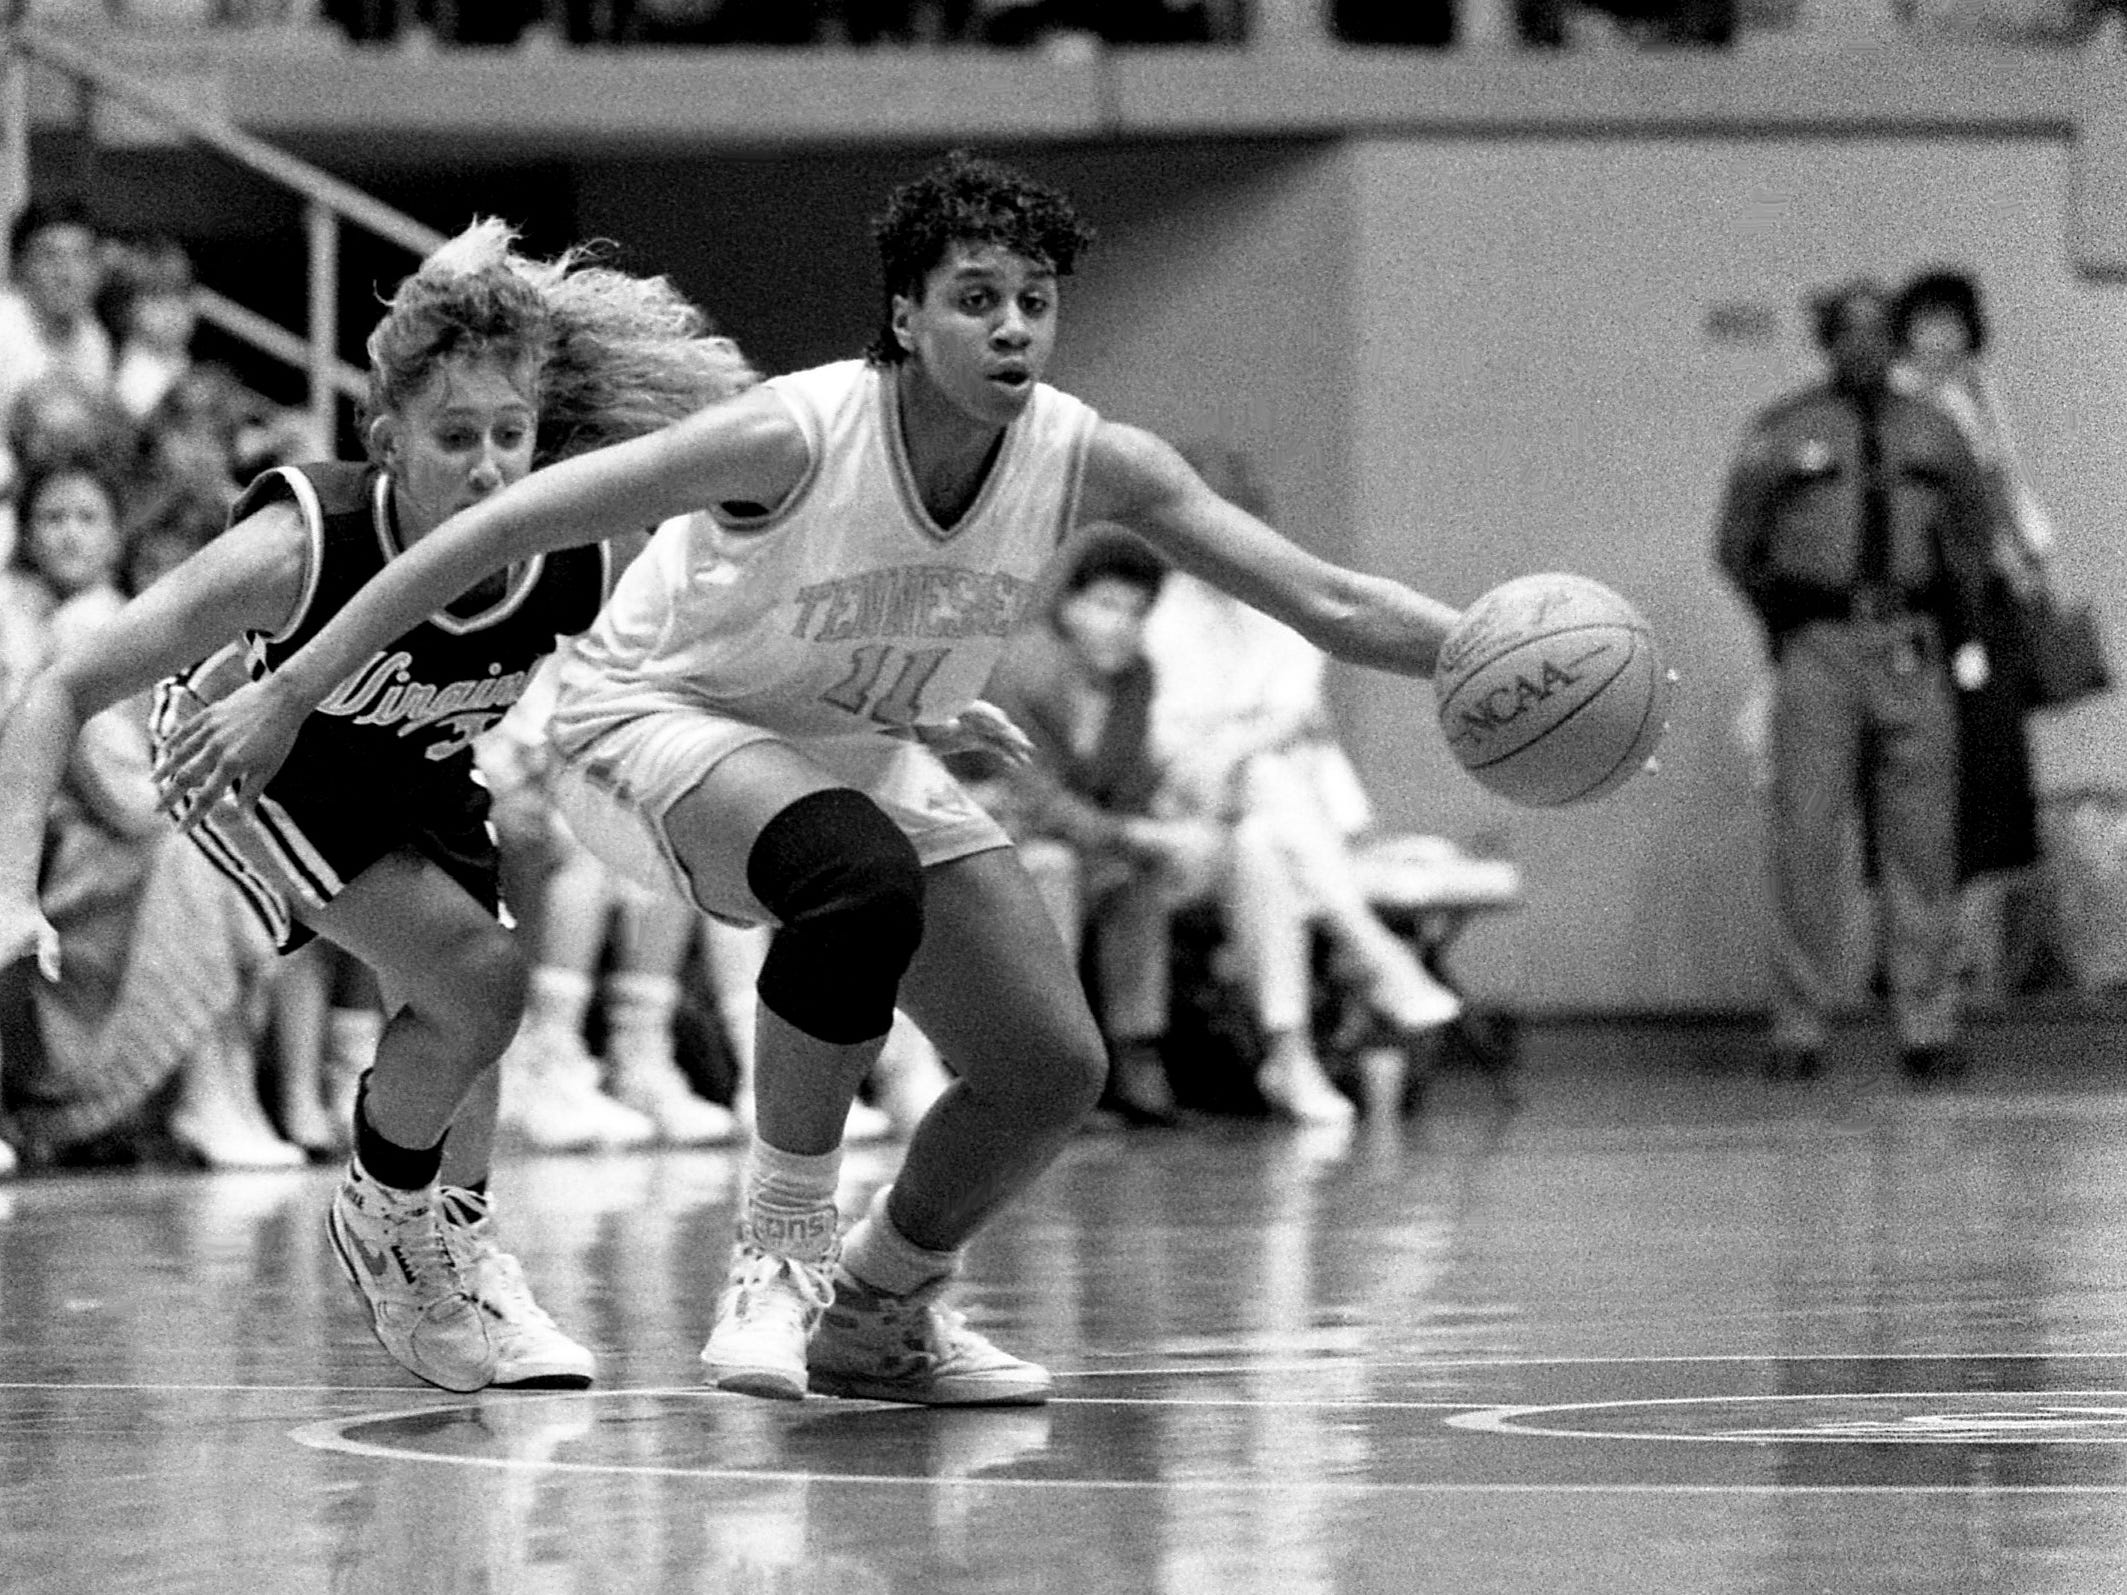 Tennessee point guard Dena Head (11) works her way up court, leaving Virginia defender Tammi Reiss behind. The No. 1 ranked Lady Vols smashed Virginia 80-47 in the NCAA East Regional semifinals at Western Kentucky's Diddle Arena in Bowling Green, Kentucky, March 23, 1989.